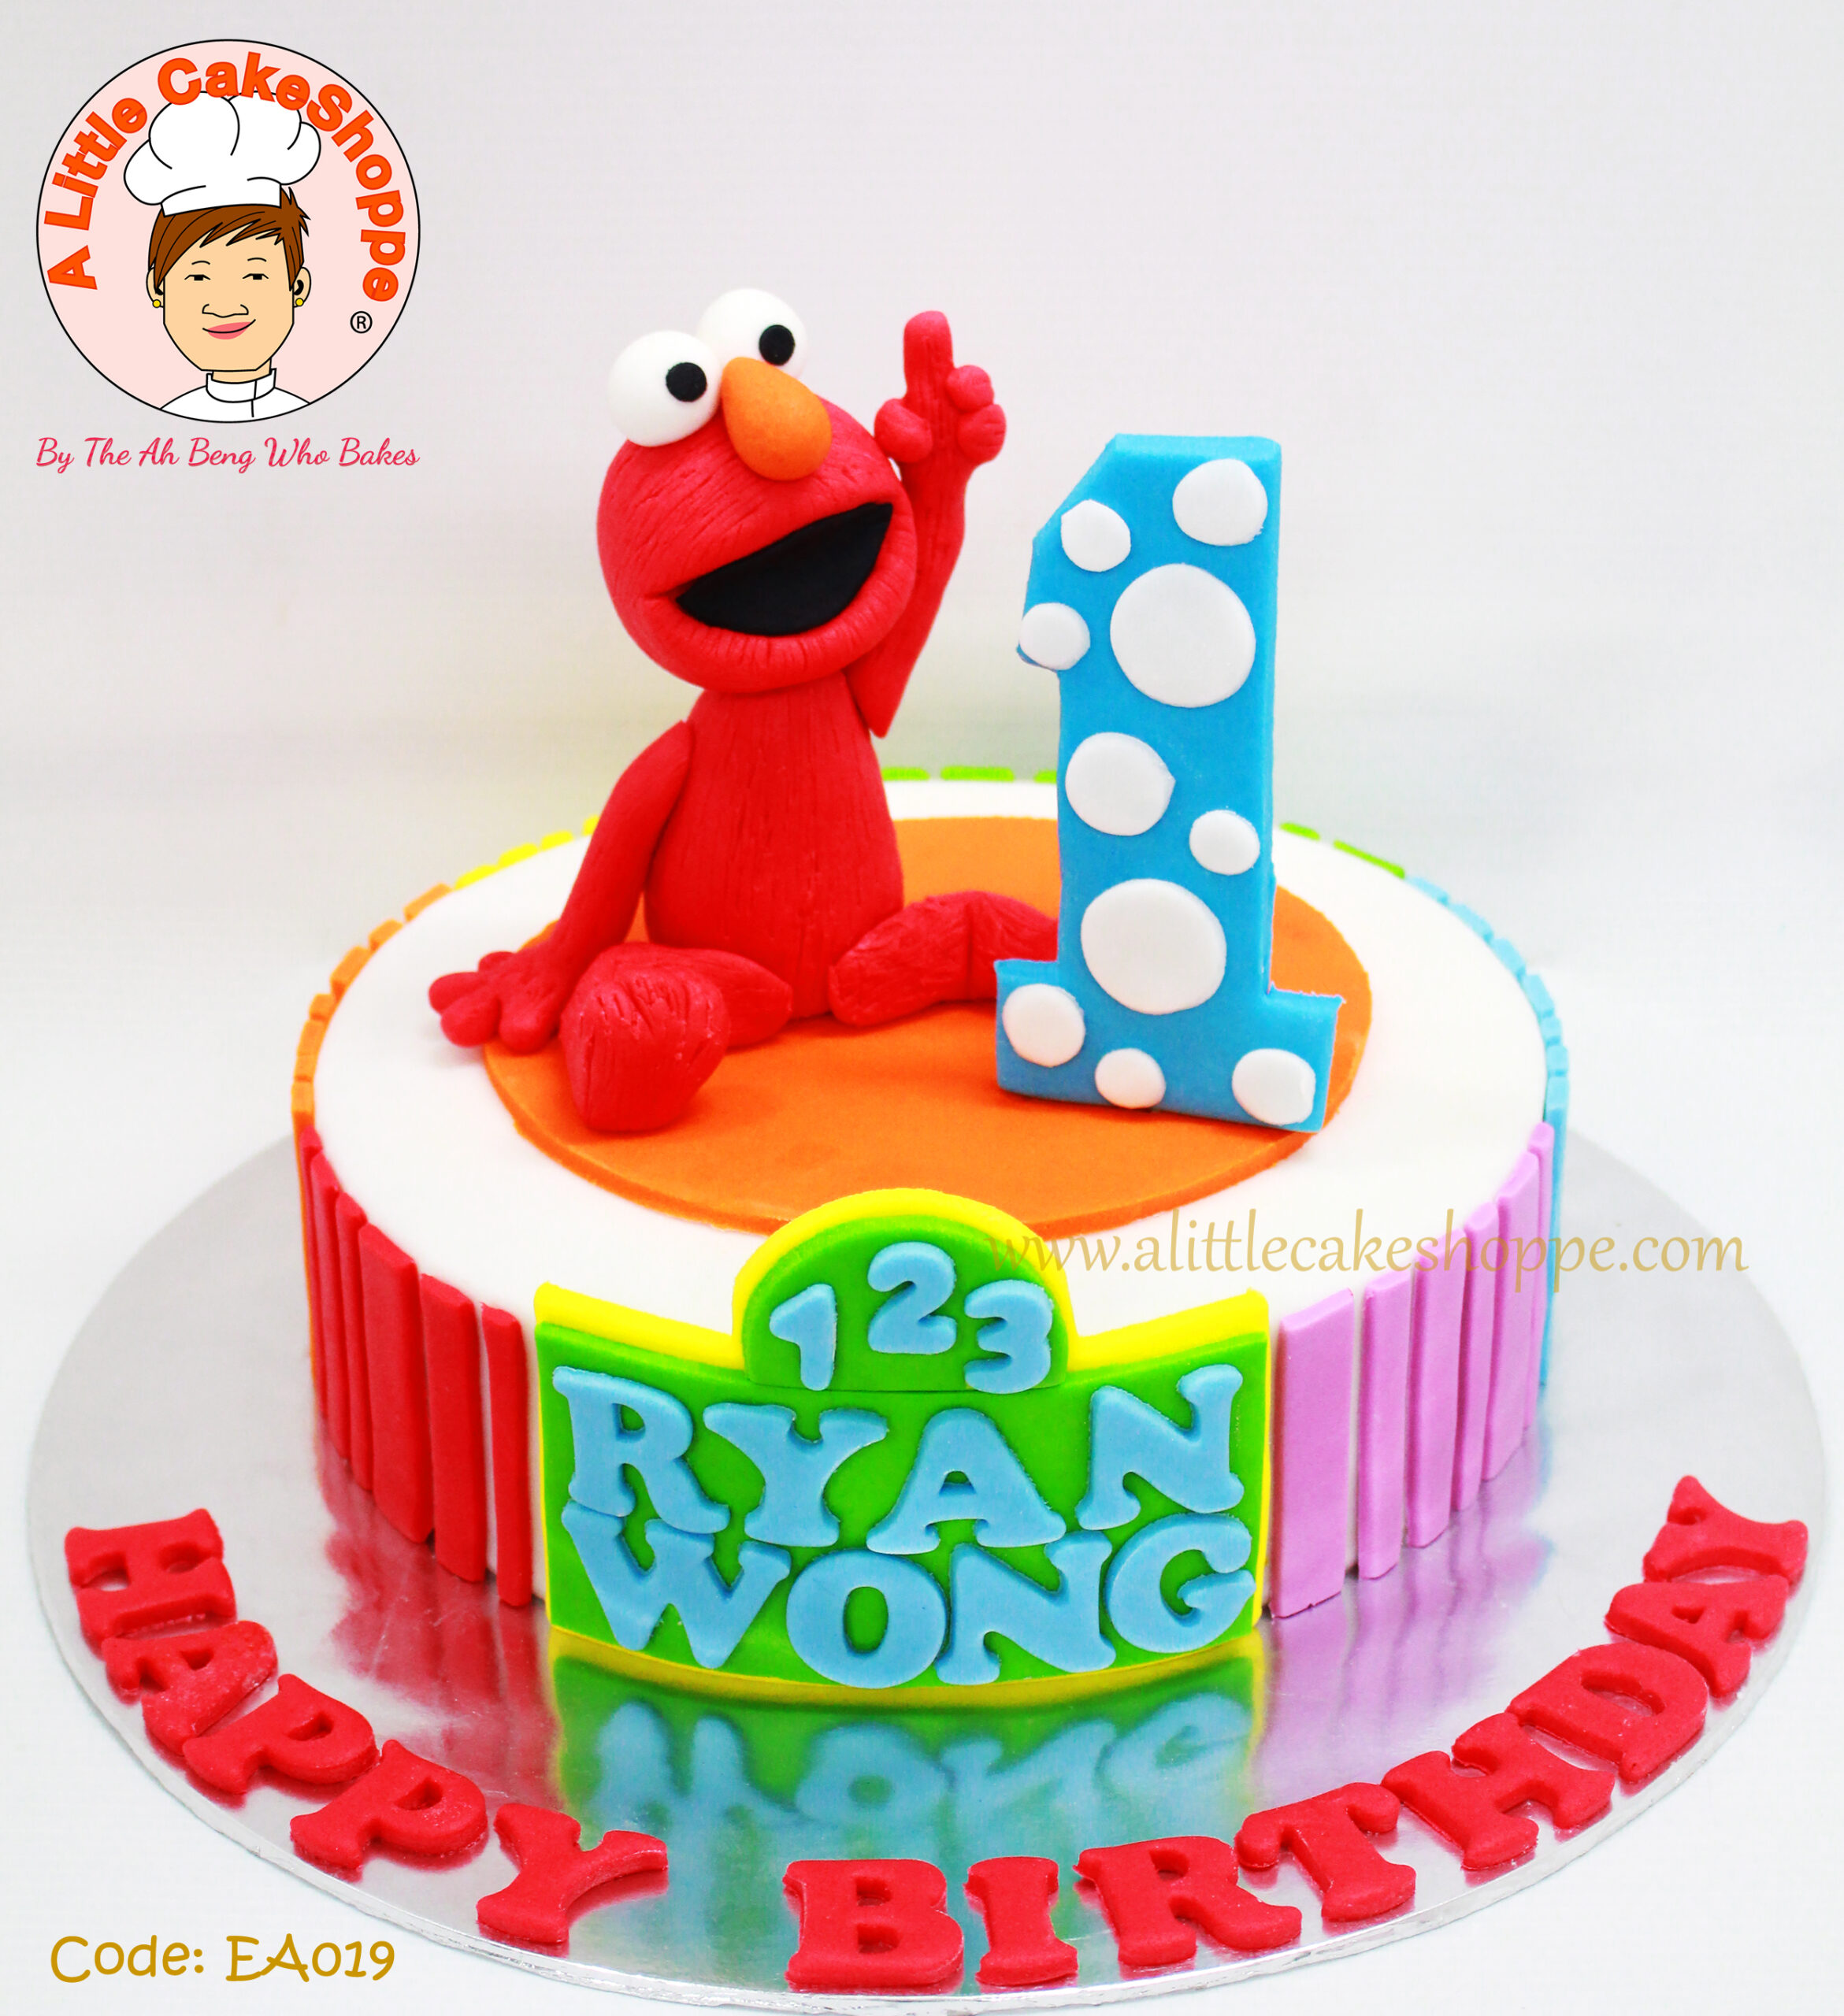 Best Customised Cake Shop Singapore custom cake 2D 3D birthday cake cupcakes desserts wedding corporate events anniversary 1st birthday 21st birthday fondant fresh cream buttercream cakes alittlecakeshoppe a little cake shoppe compliments review singapore bakers SG cake shop cakeshop ah beng who bakes elmo sesame street cookie monster